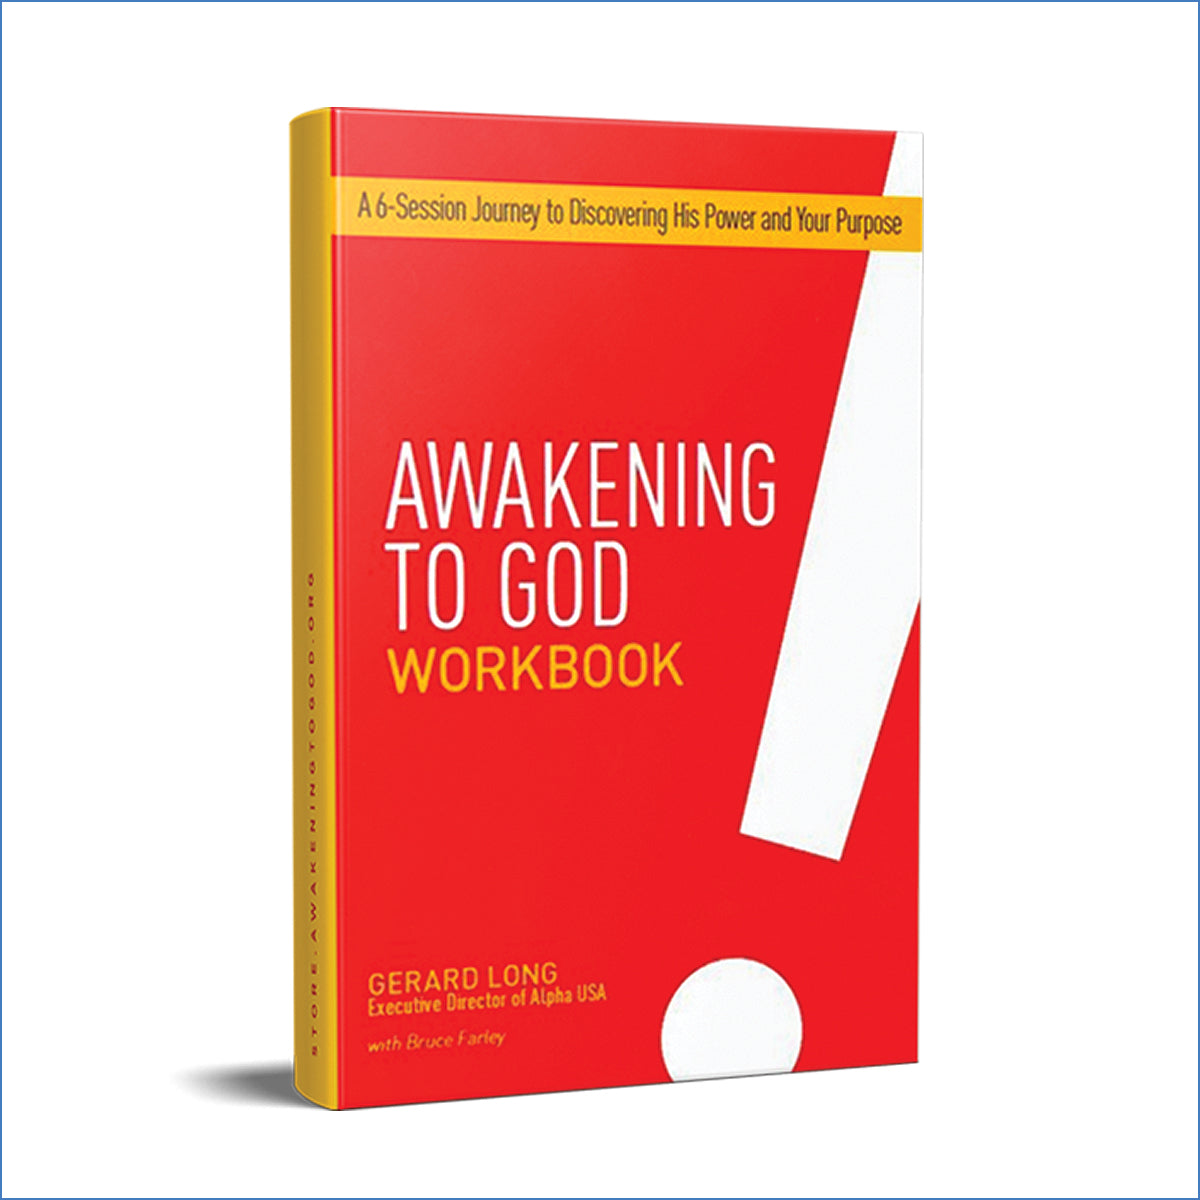 Awakening to God - Workbook